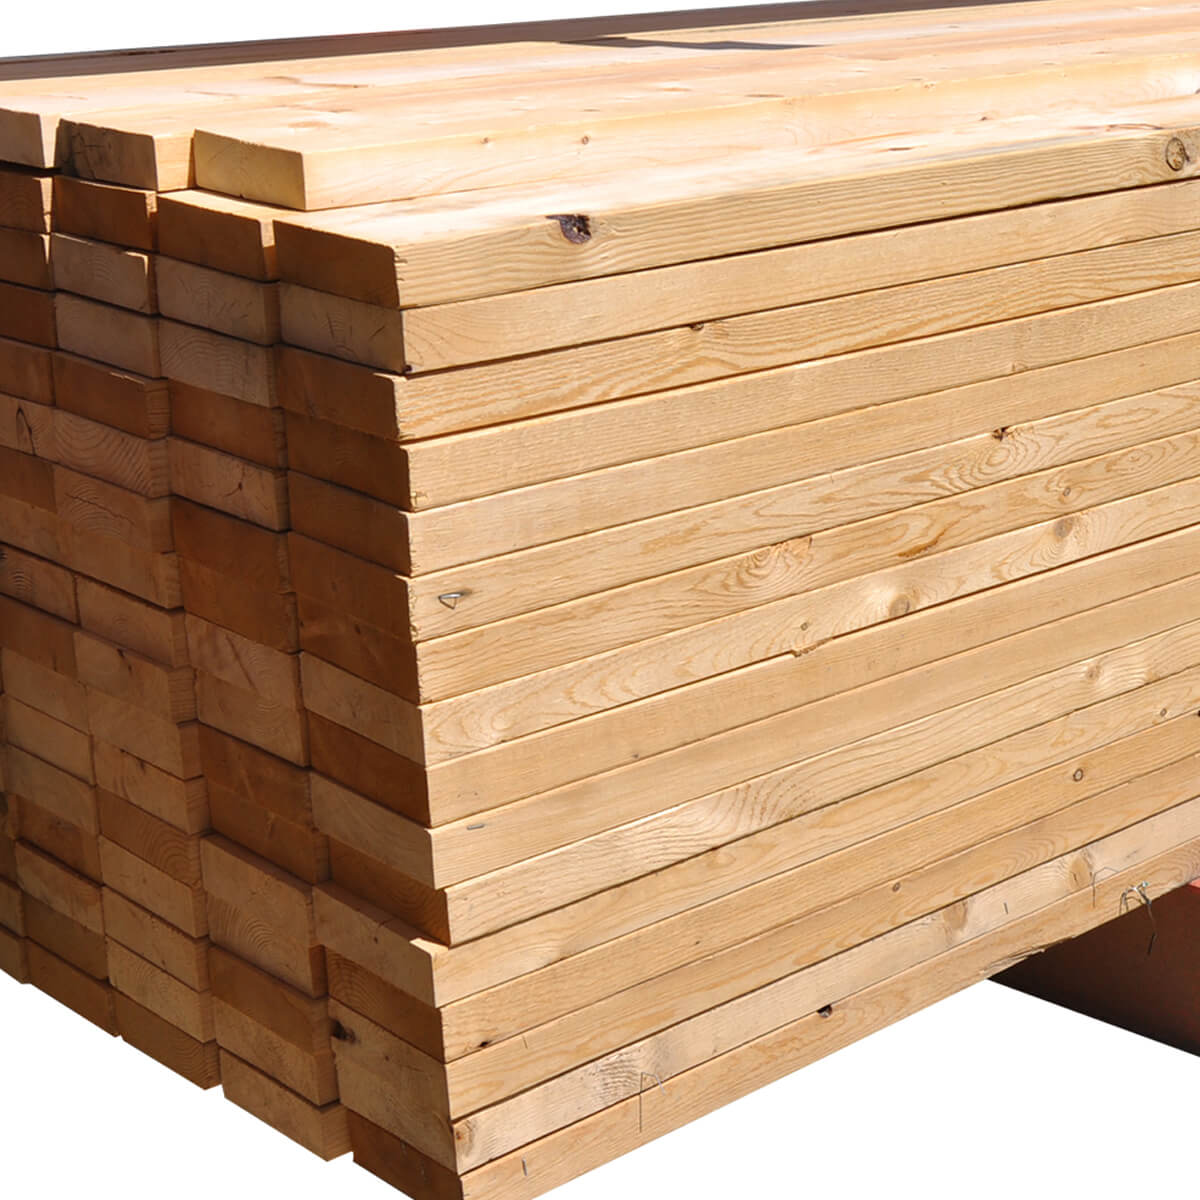 #2 Appearance Spruce Lumber - SPR #2 Appearance 2 x 4 x 16-ft